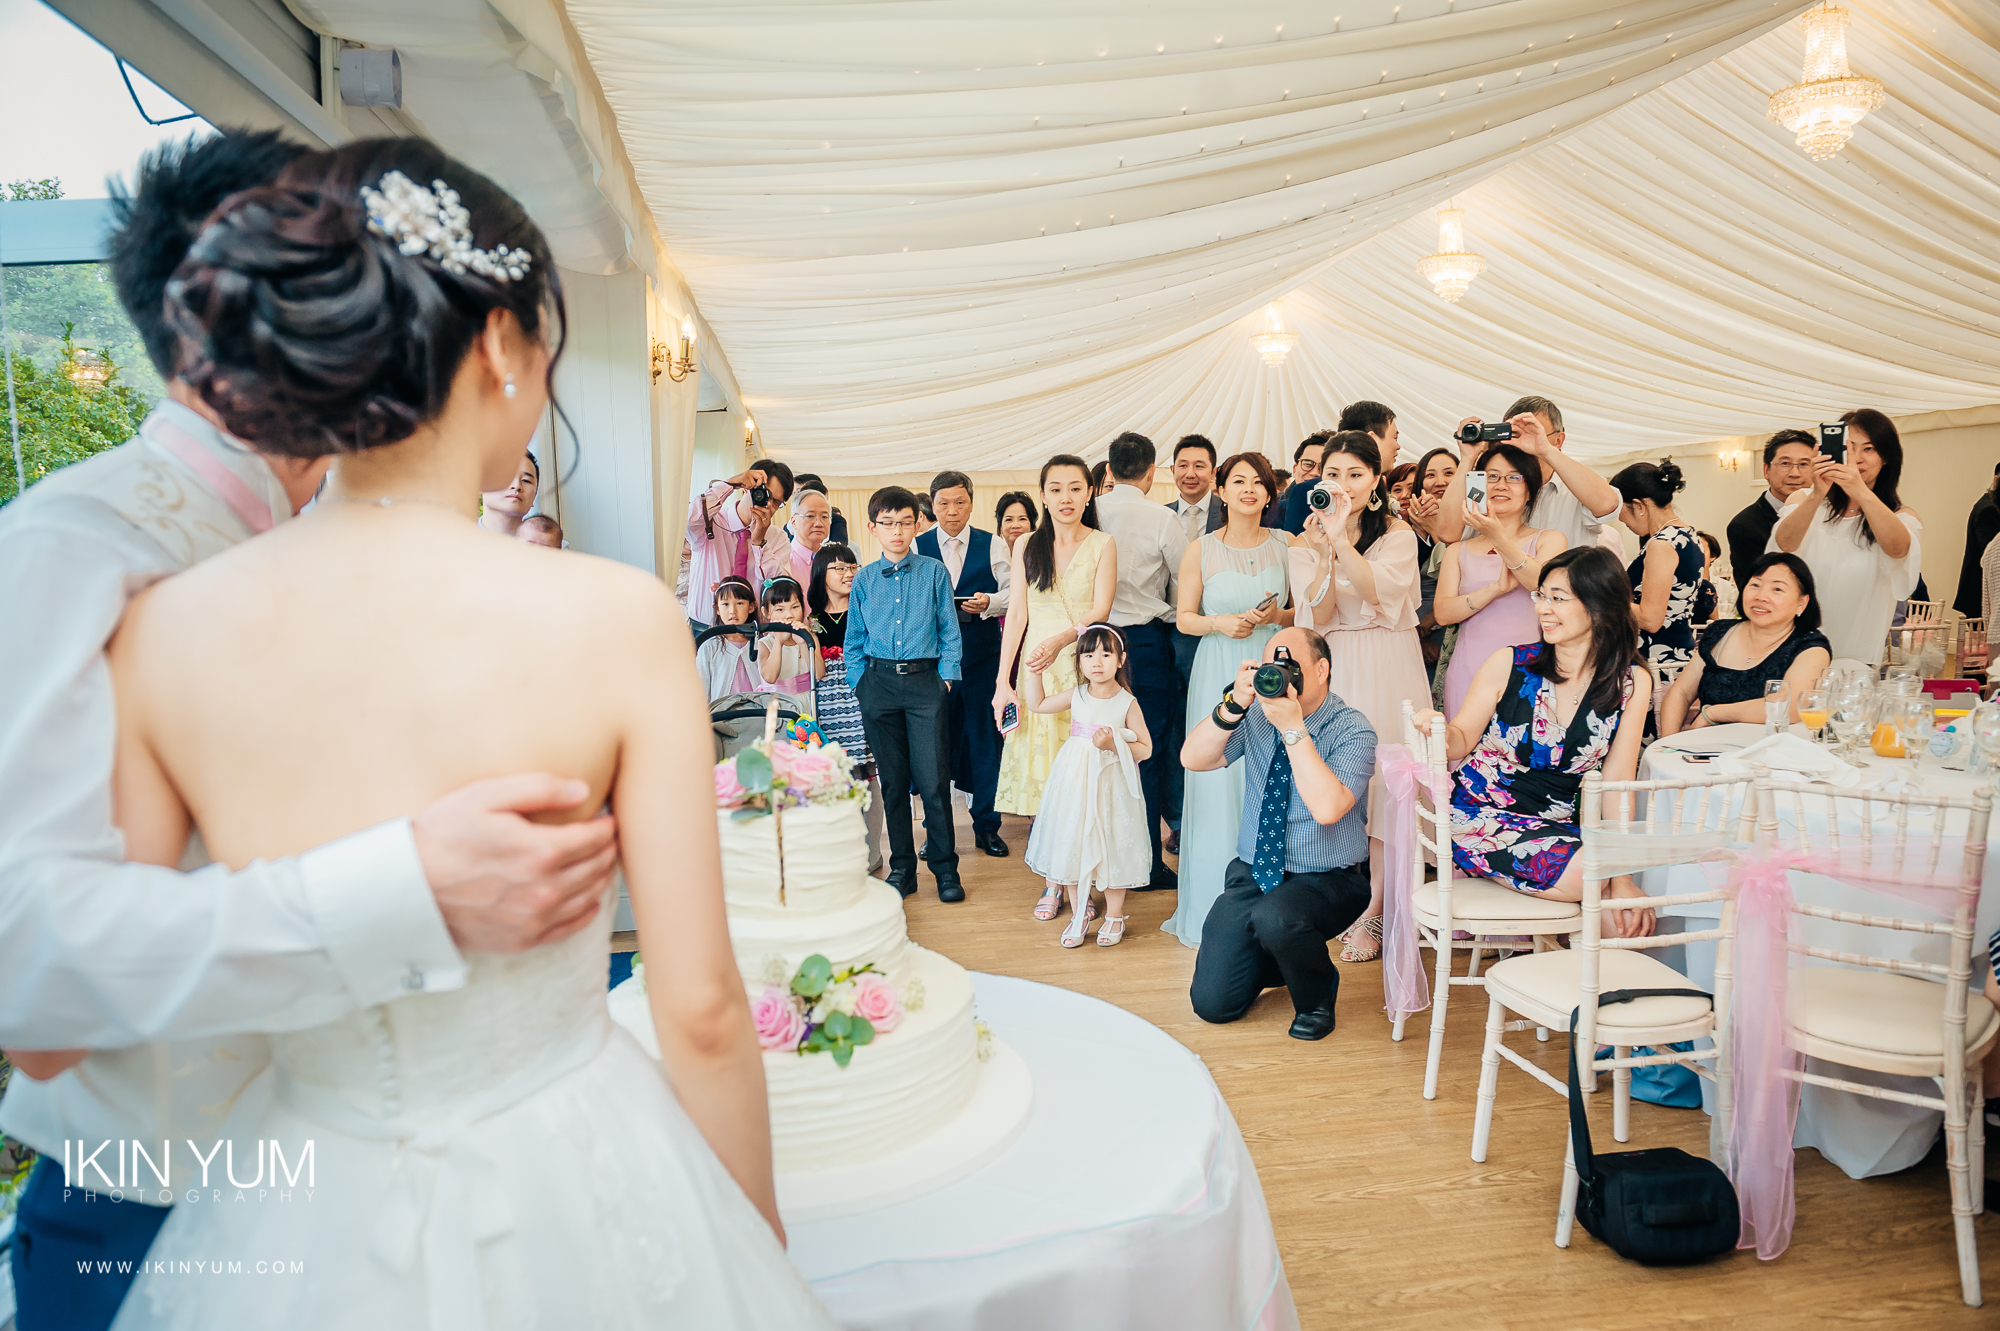 Sylvianne & Chun Wedding Day - Ikin Yum Photography-114.jpg